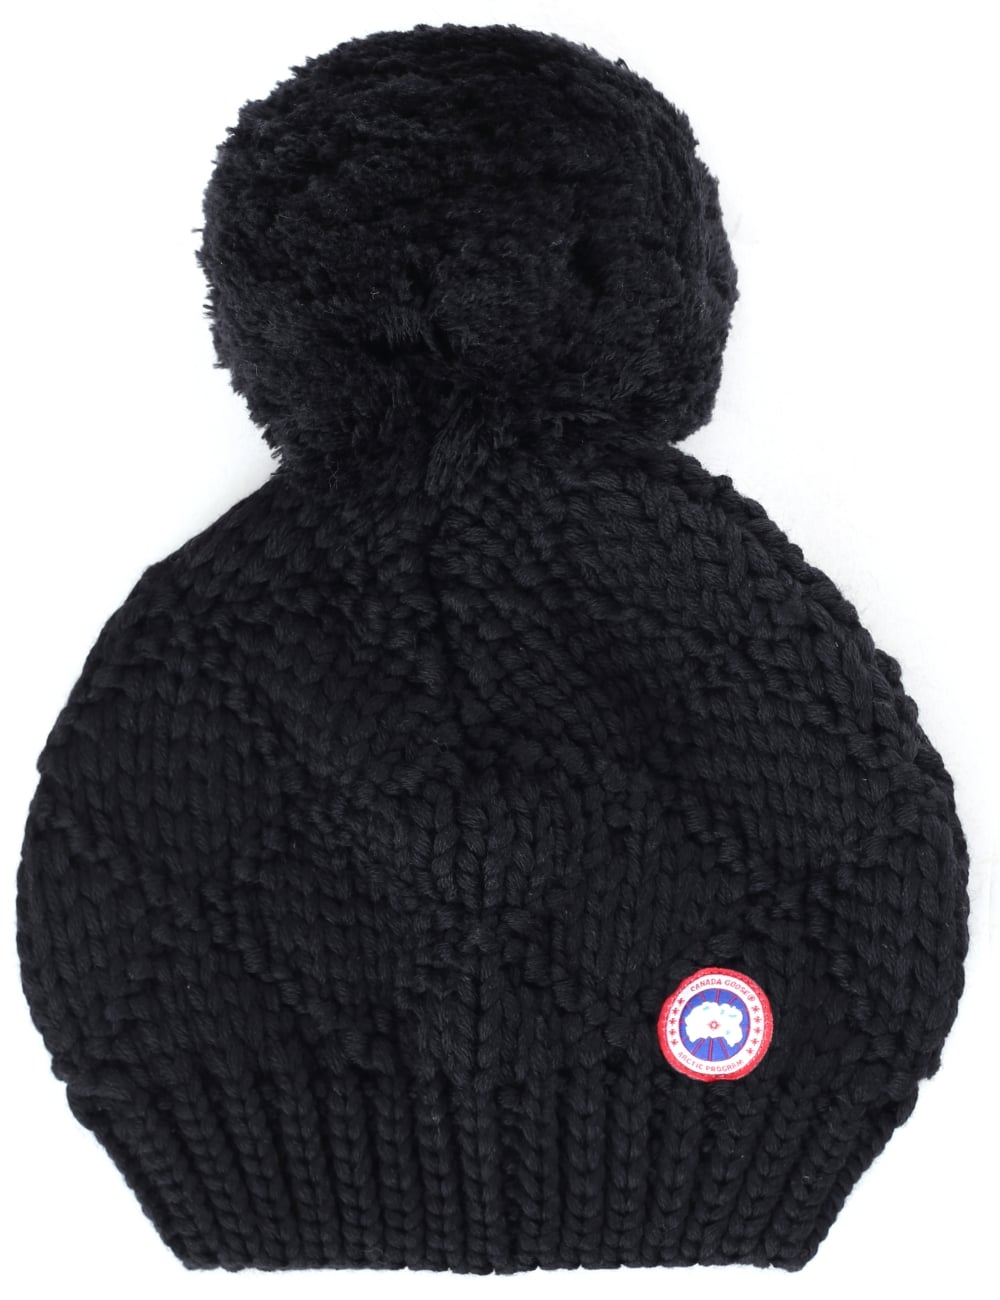 Canada Goose Women s Giant Pom Pom Knitted Beanie Hat ee0b089d4